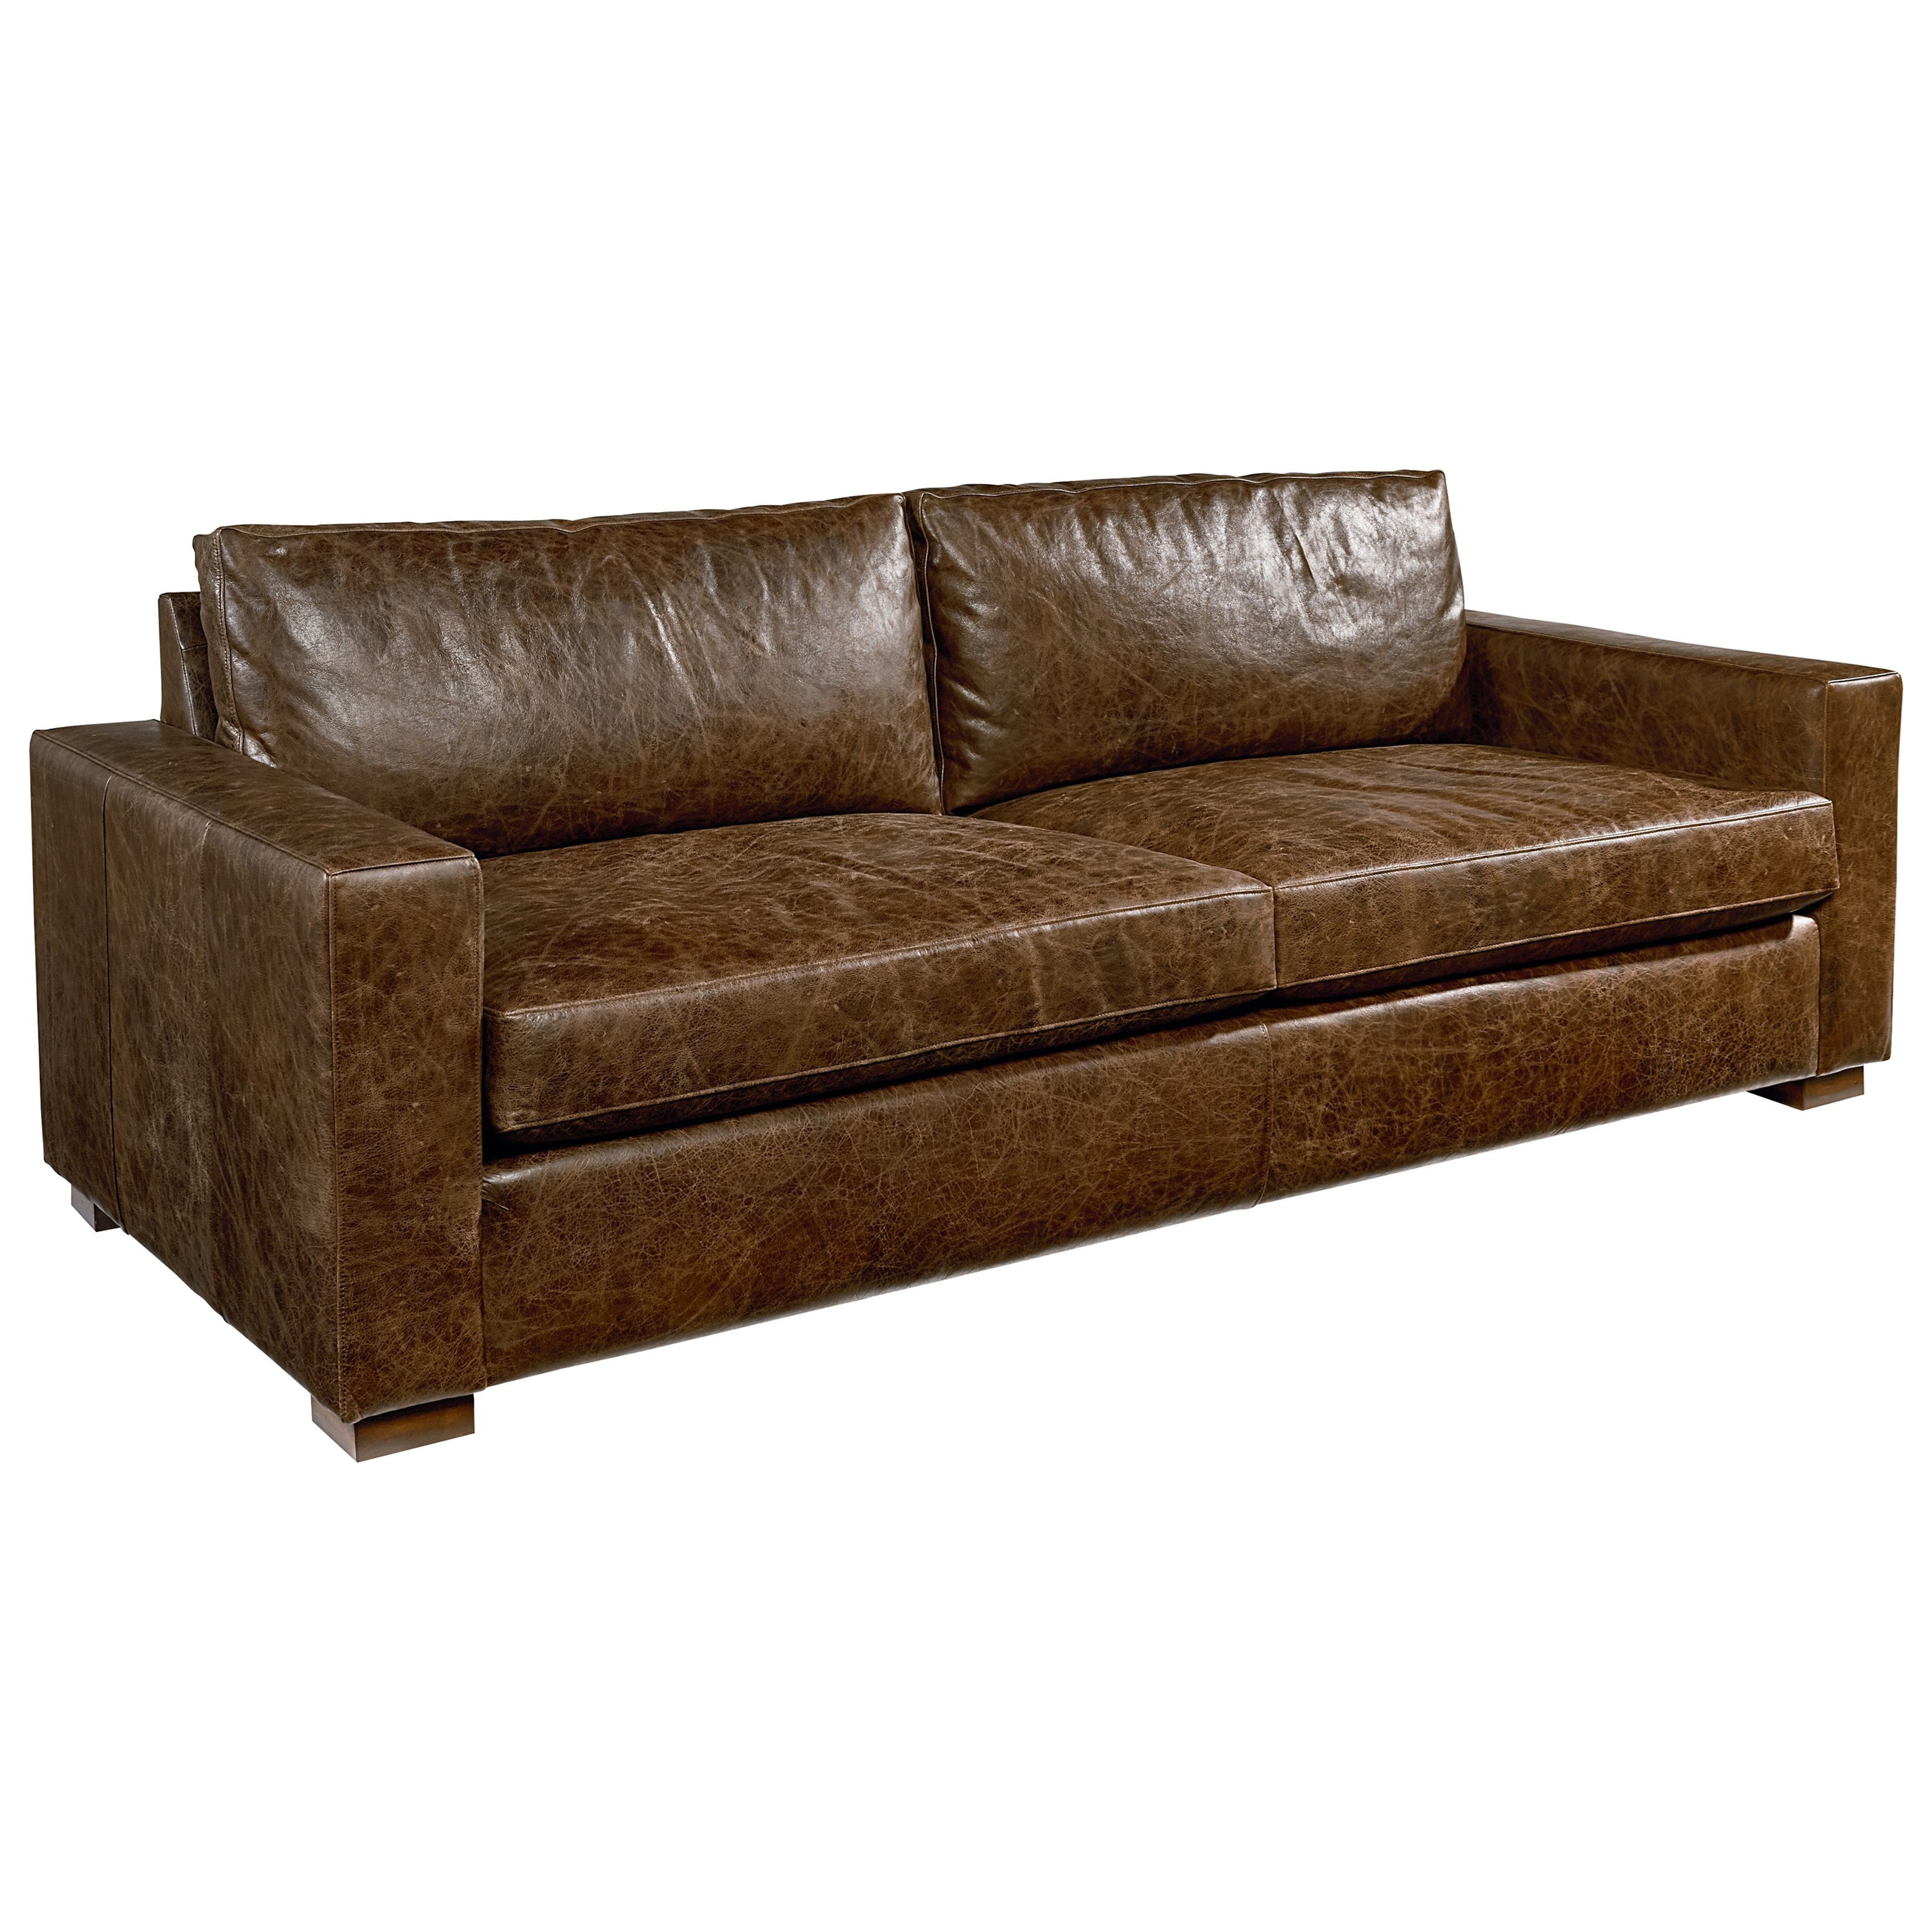 Magnolia Home by Joanna Gaines Southern Sown Leather Sofa